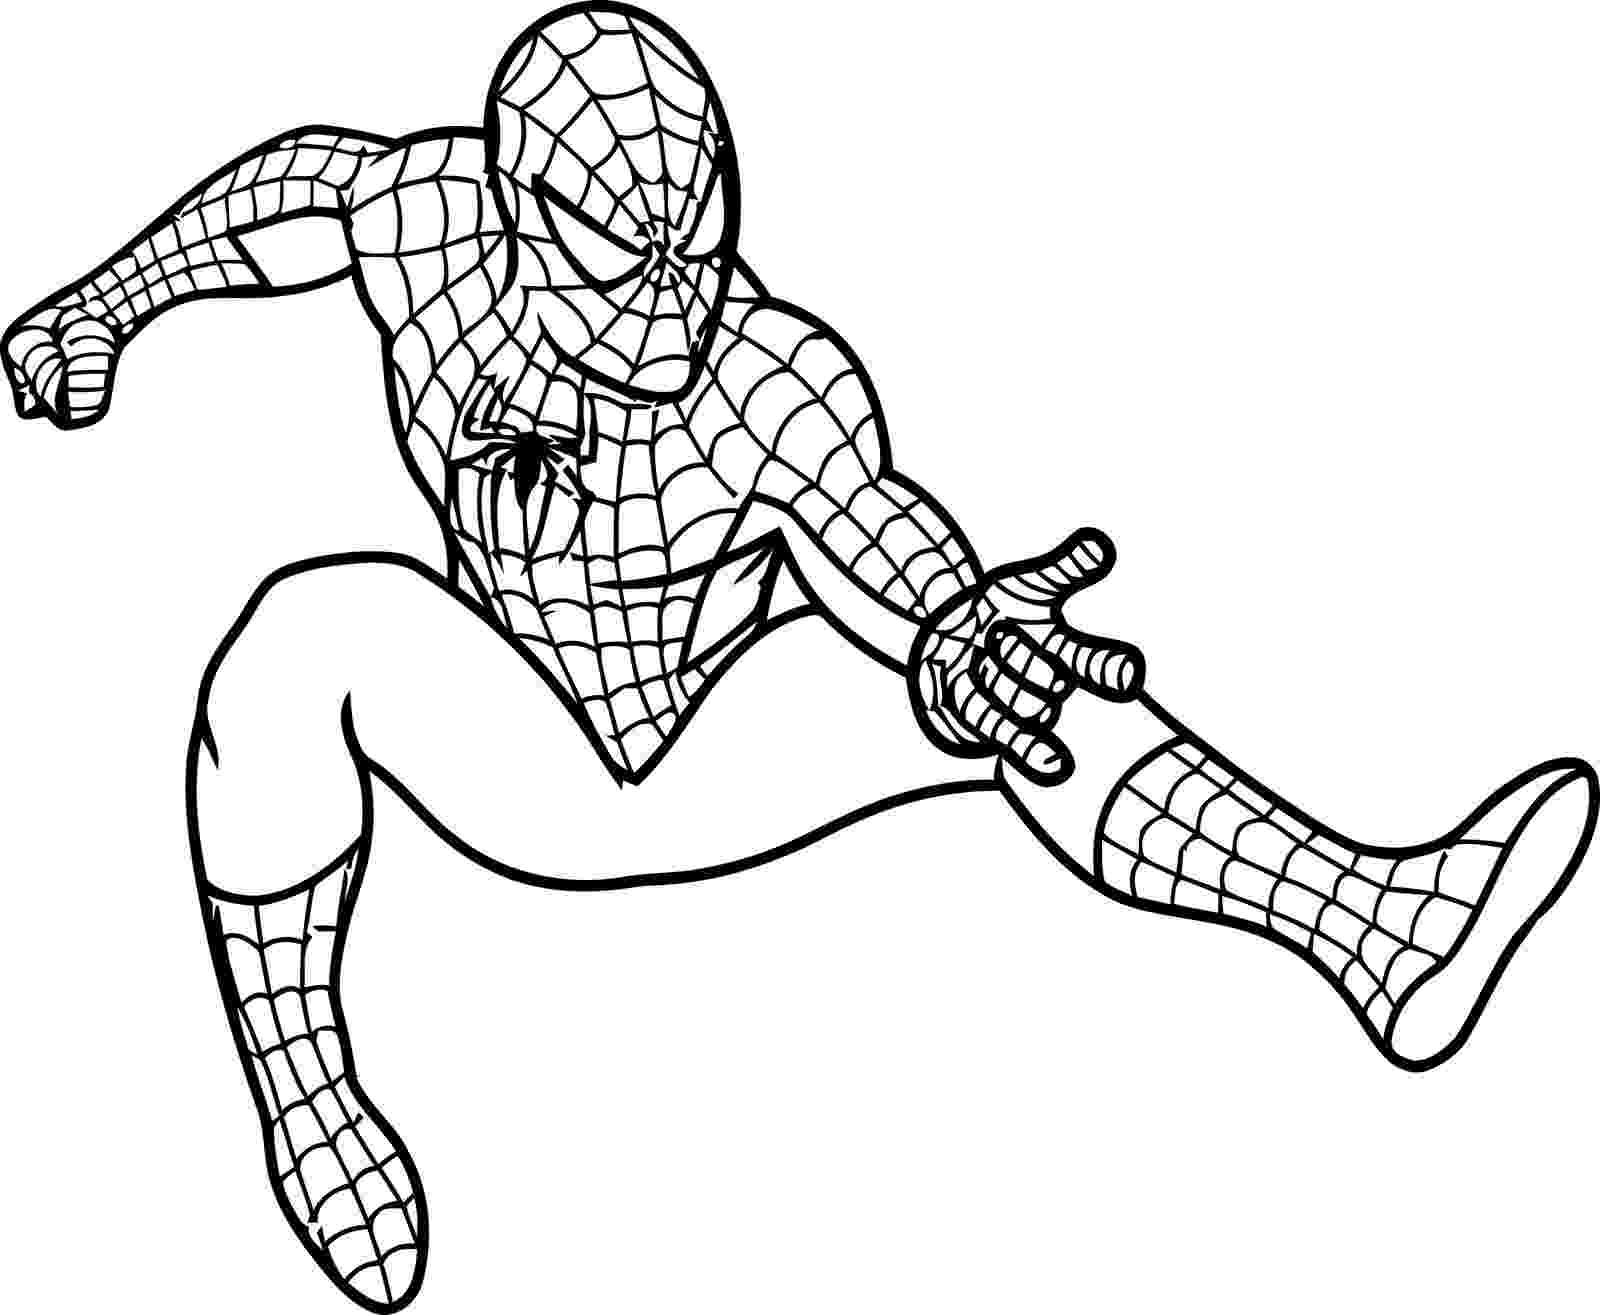 spiderman coloring pages free coloring pages spiderman free printable coloring pages pages free spiderman coloring